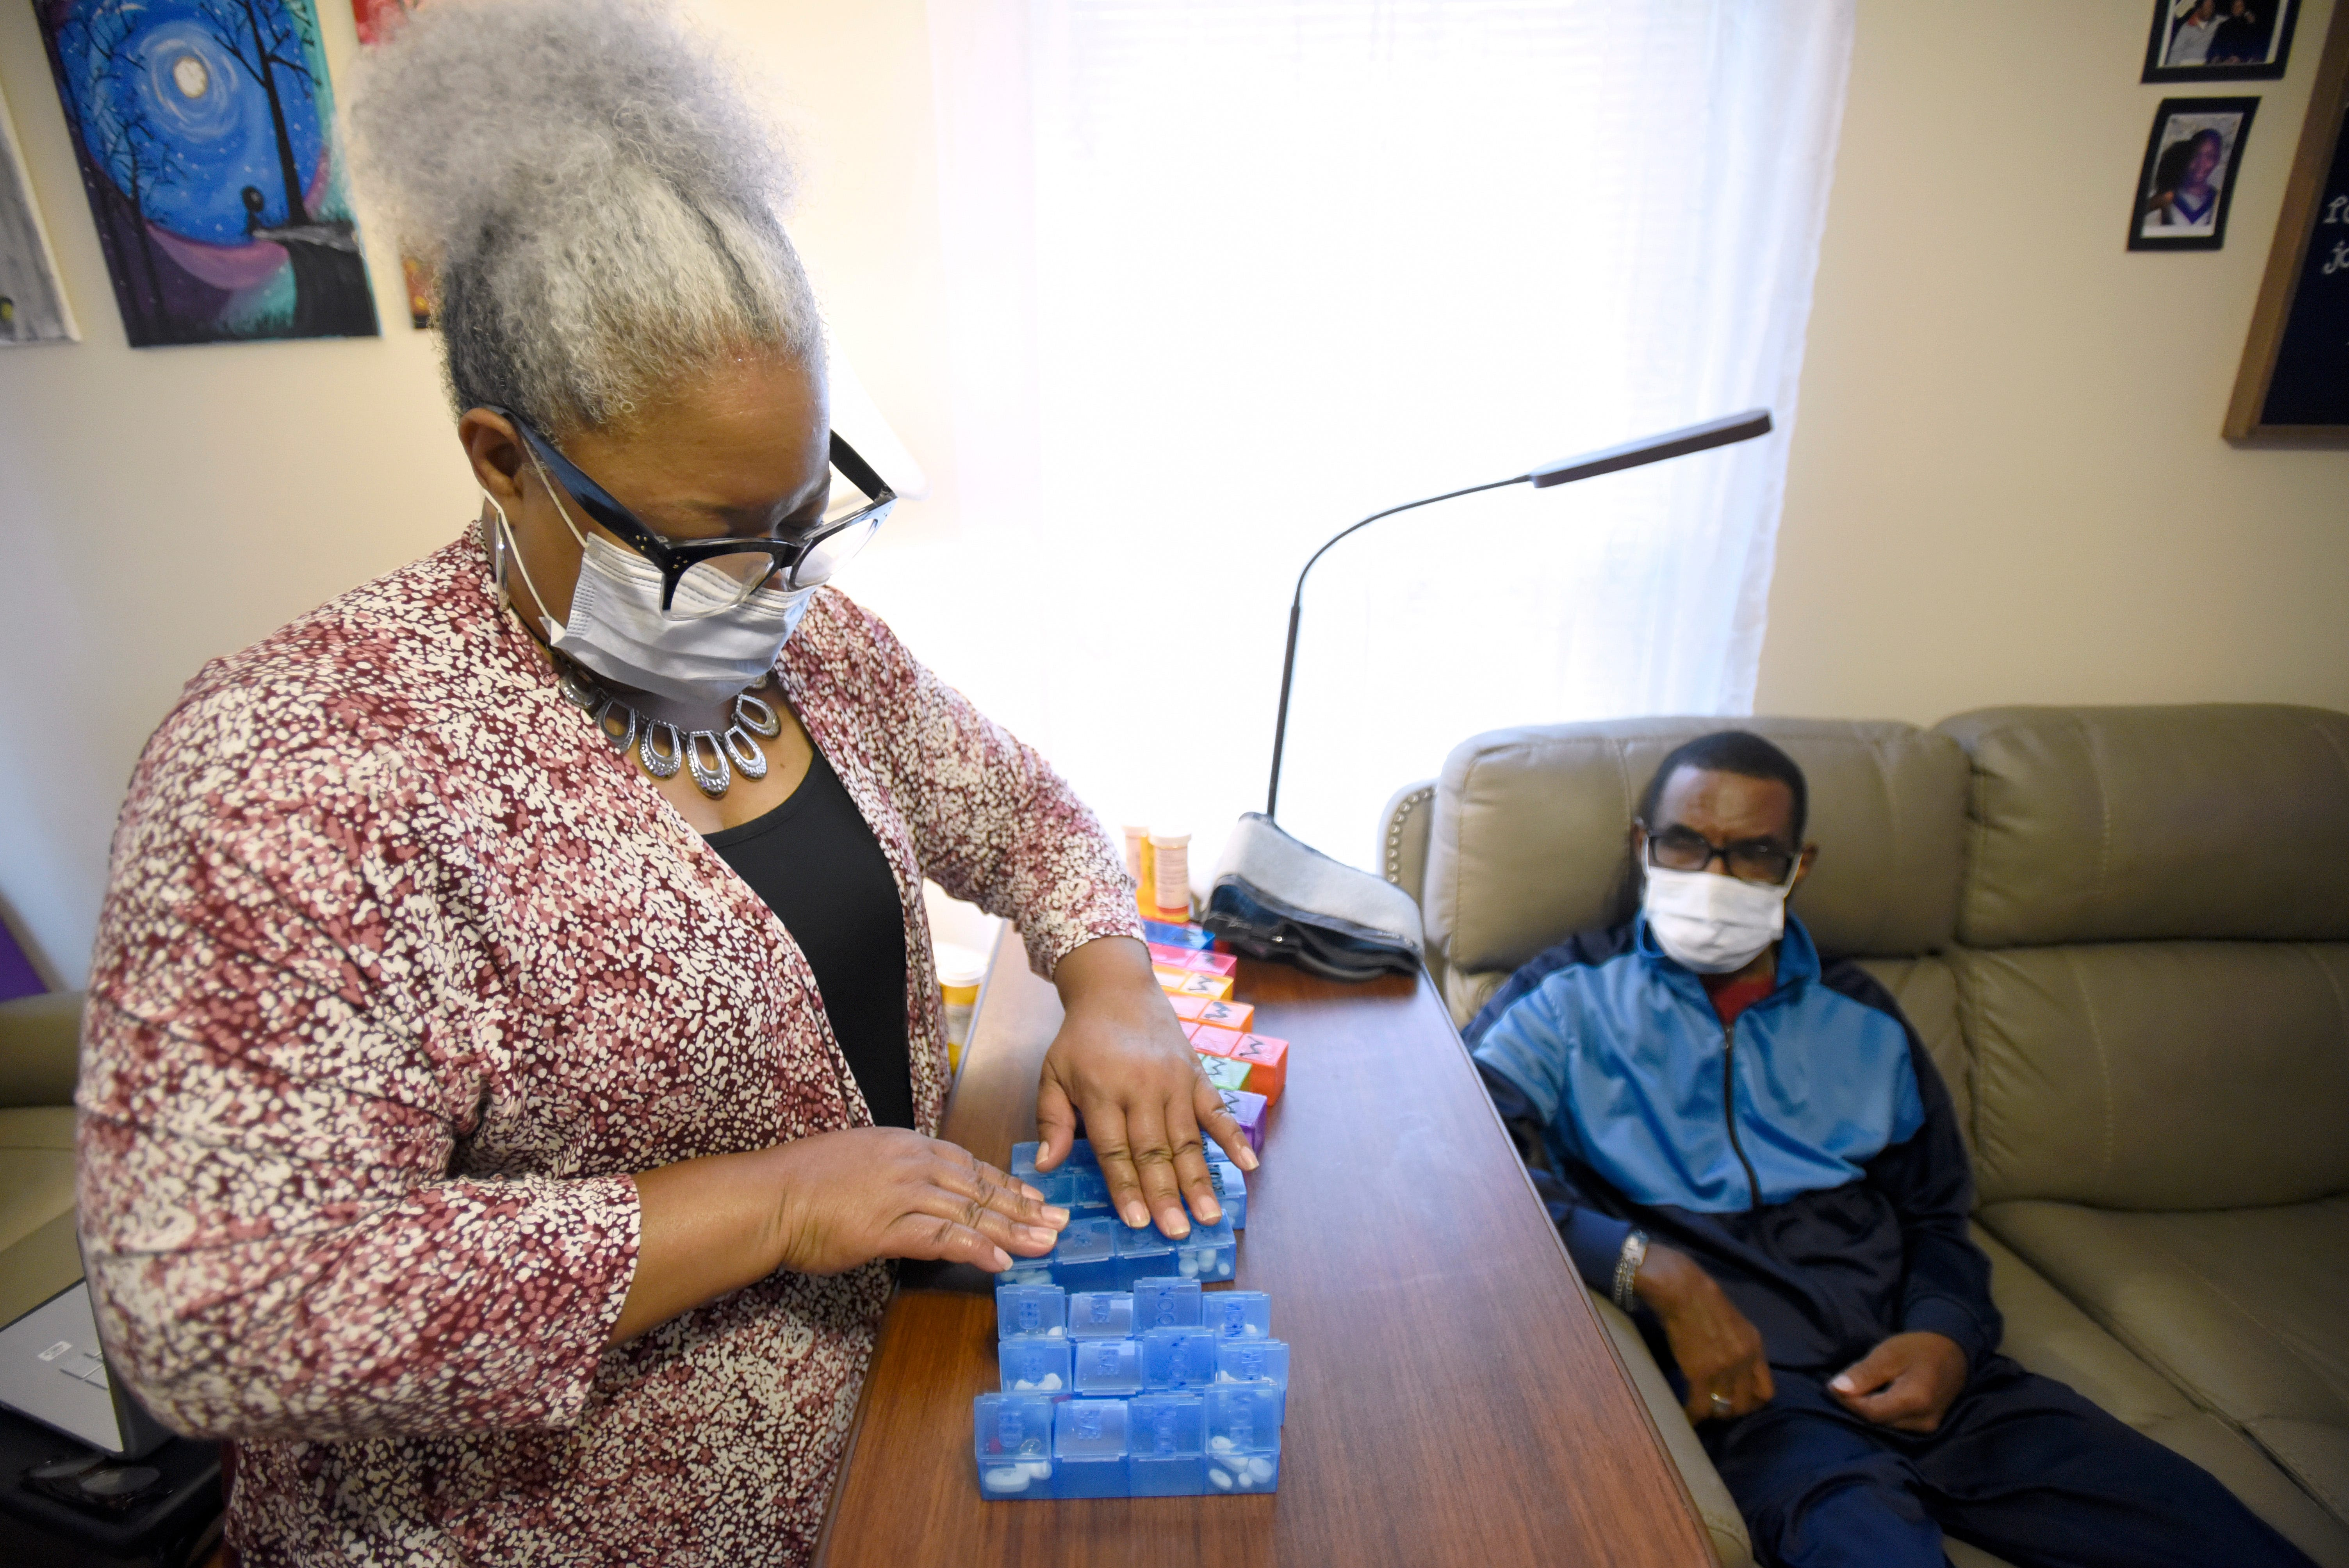 Theresa Robertson, left, 58, organizes medication for her husband, Emanuel, 63, at their home in Elkridge, Md., Sunday, Oct. 10, 2021. Photo by Steve Ruark